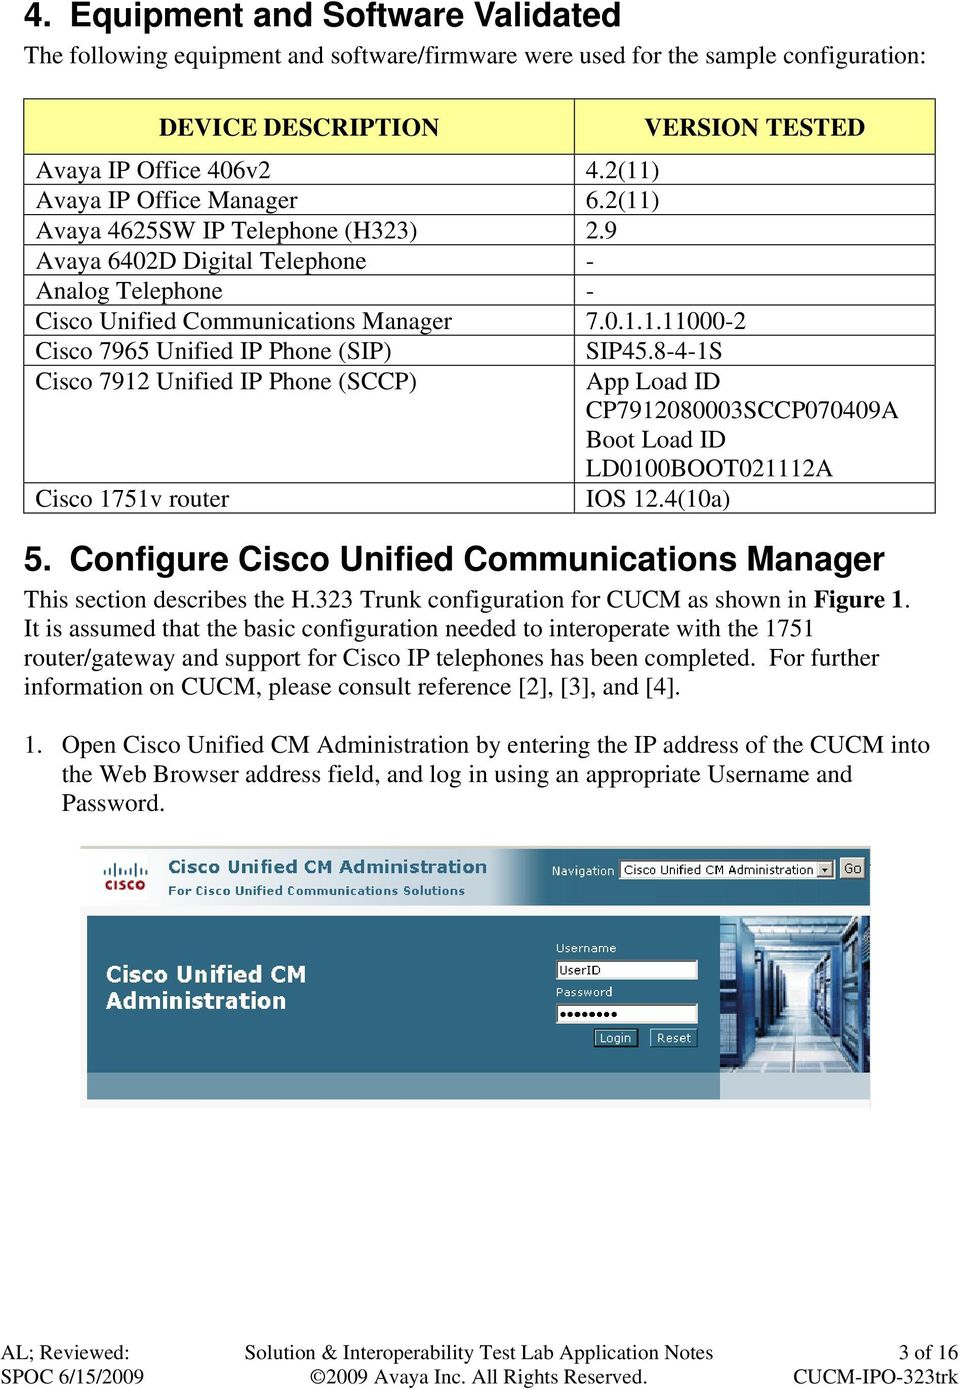 8-4-1S App Load ID CP7912080003SCCP070409A Boot Load ID LD0100BOOT021112A IOS 12.4(10a) 5. Configure Cisco Unified Communications Manager This section describes the H.